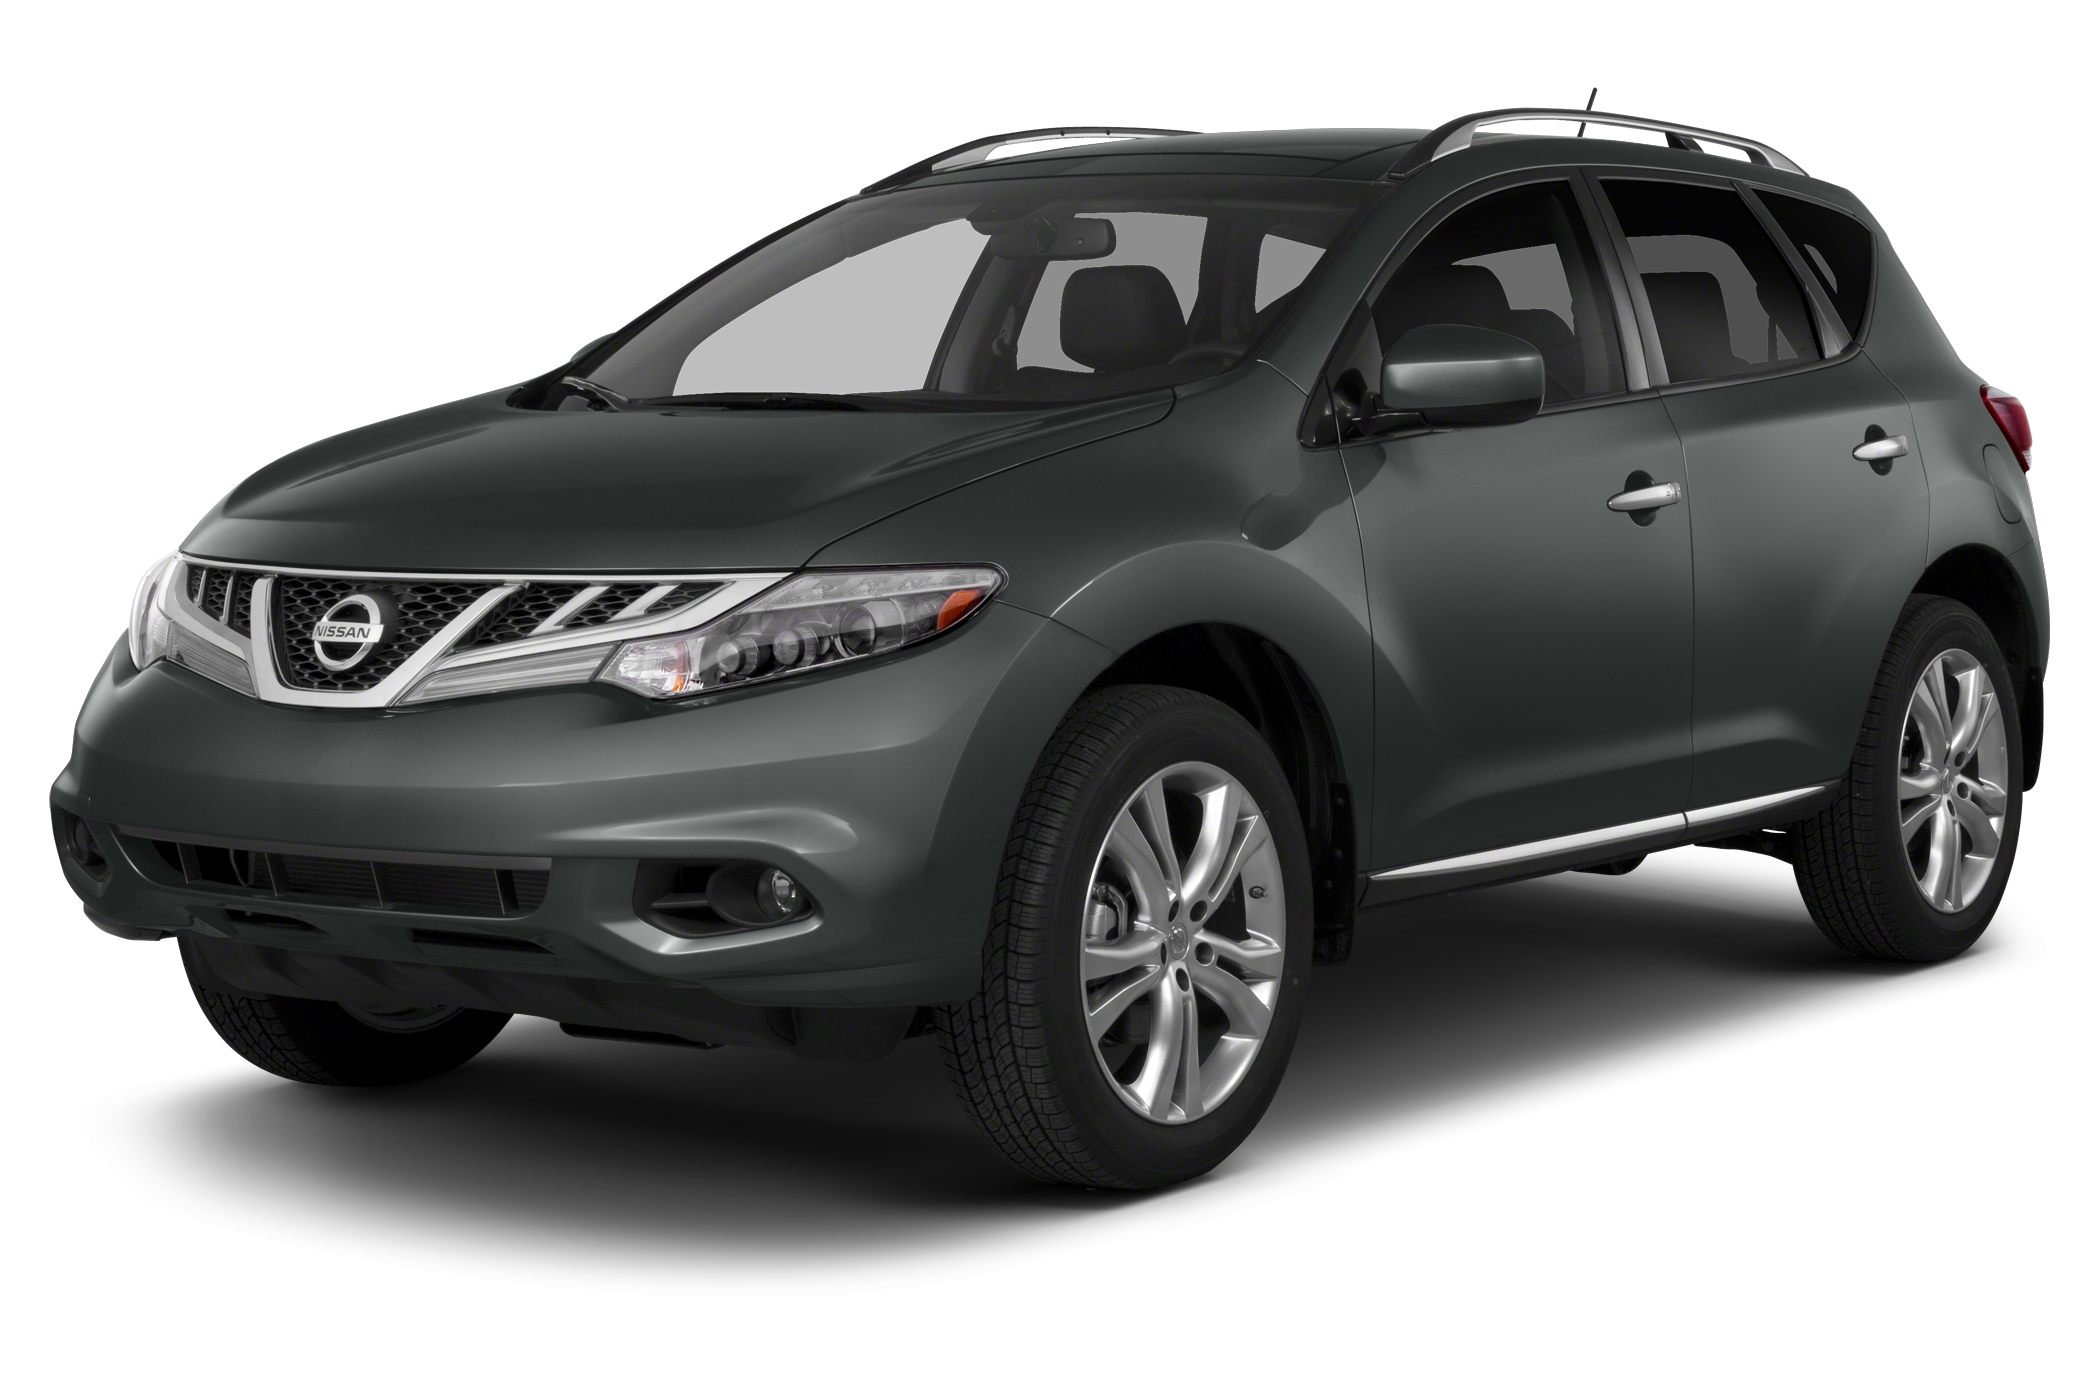 2014 Nissan Murano LE SUV for sale in Indianapolis for $35,991 with 5,377 miles